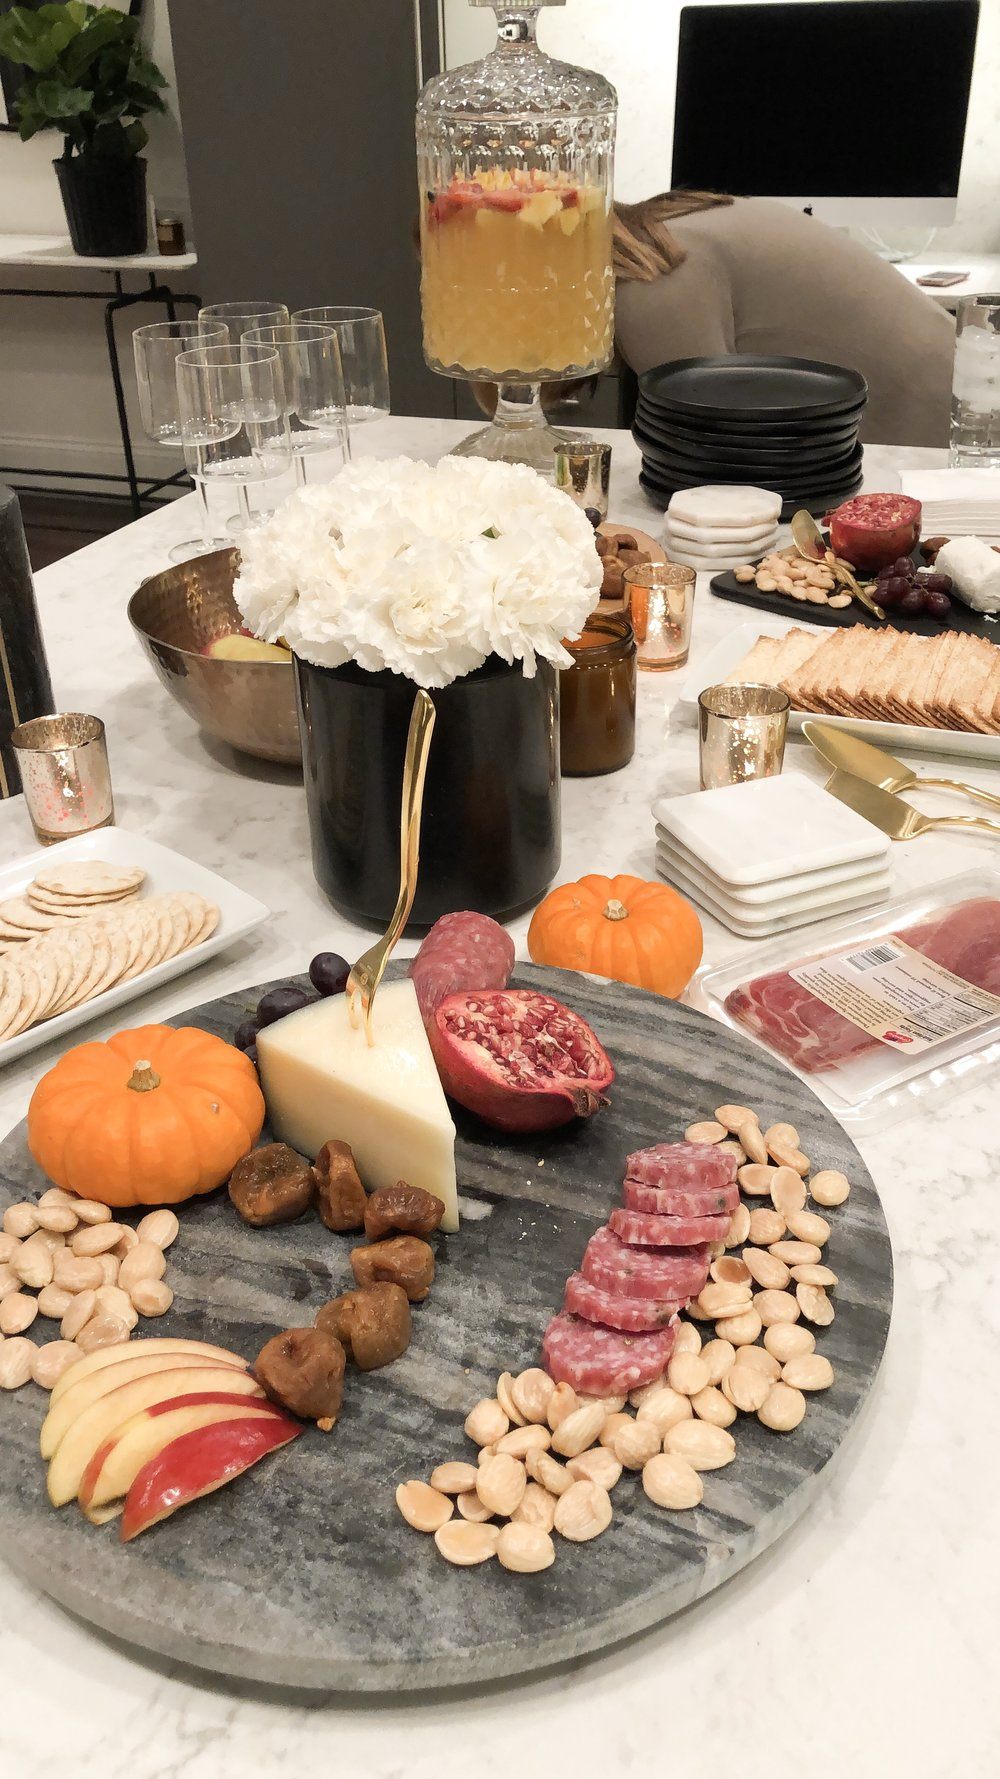 Getting set up - I like to mix fruits, nuts, meats and cheeses on my boards. I get my inspiration from Pinterest or The Project Platter (their charcuterie boards are a work of art)! I have collected my serving dishes over time but I'm always checking Homegoods and TJ Maxx for a lucky find.